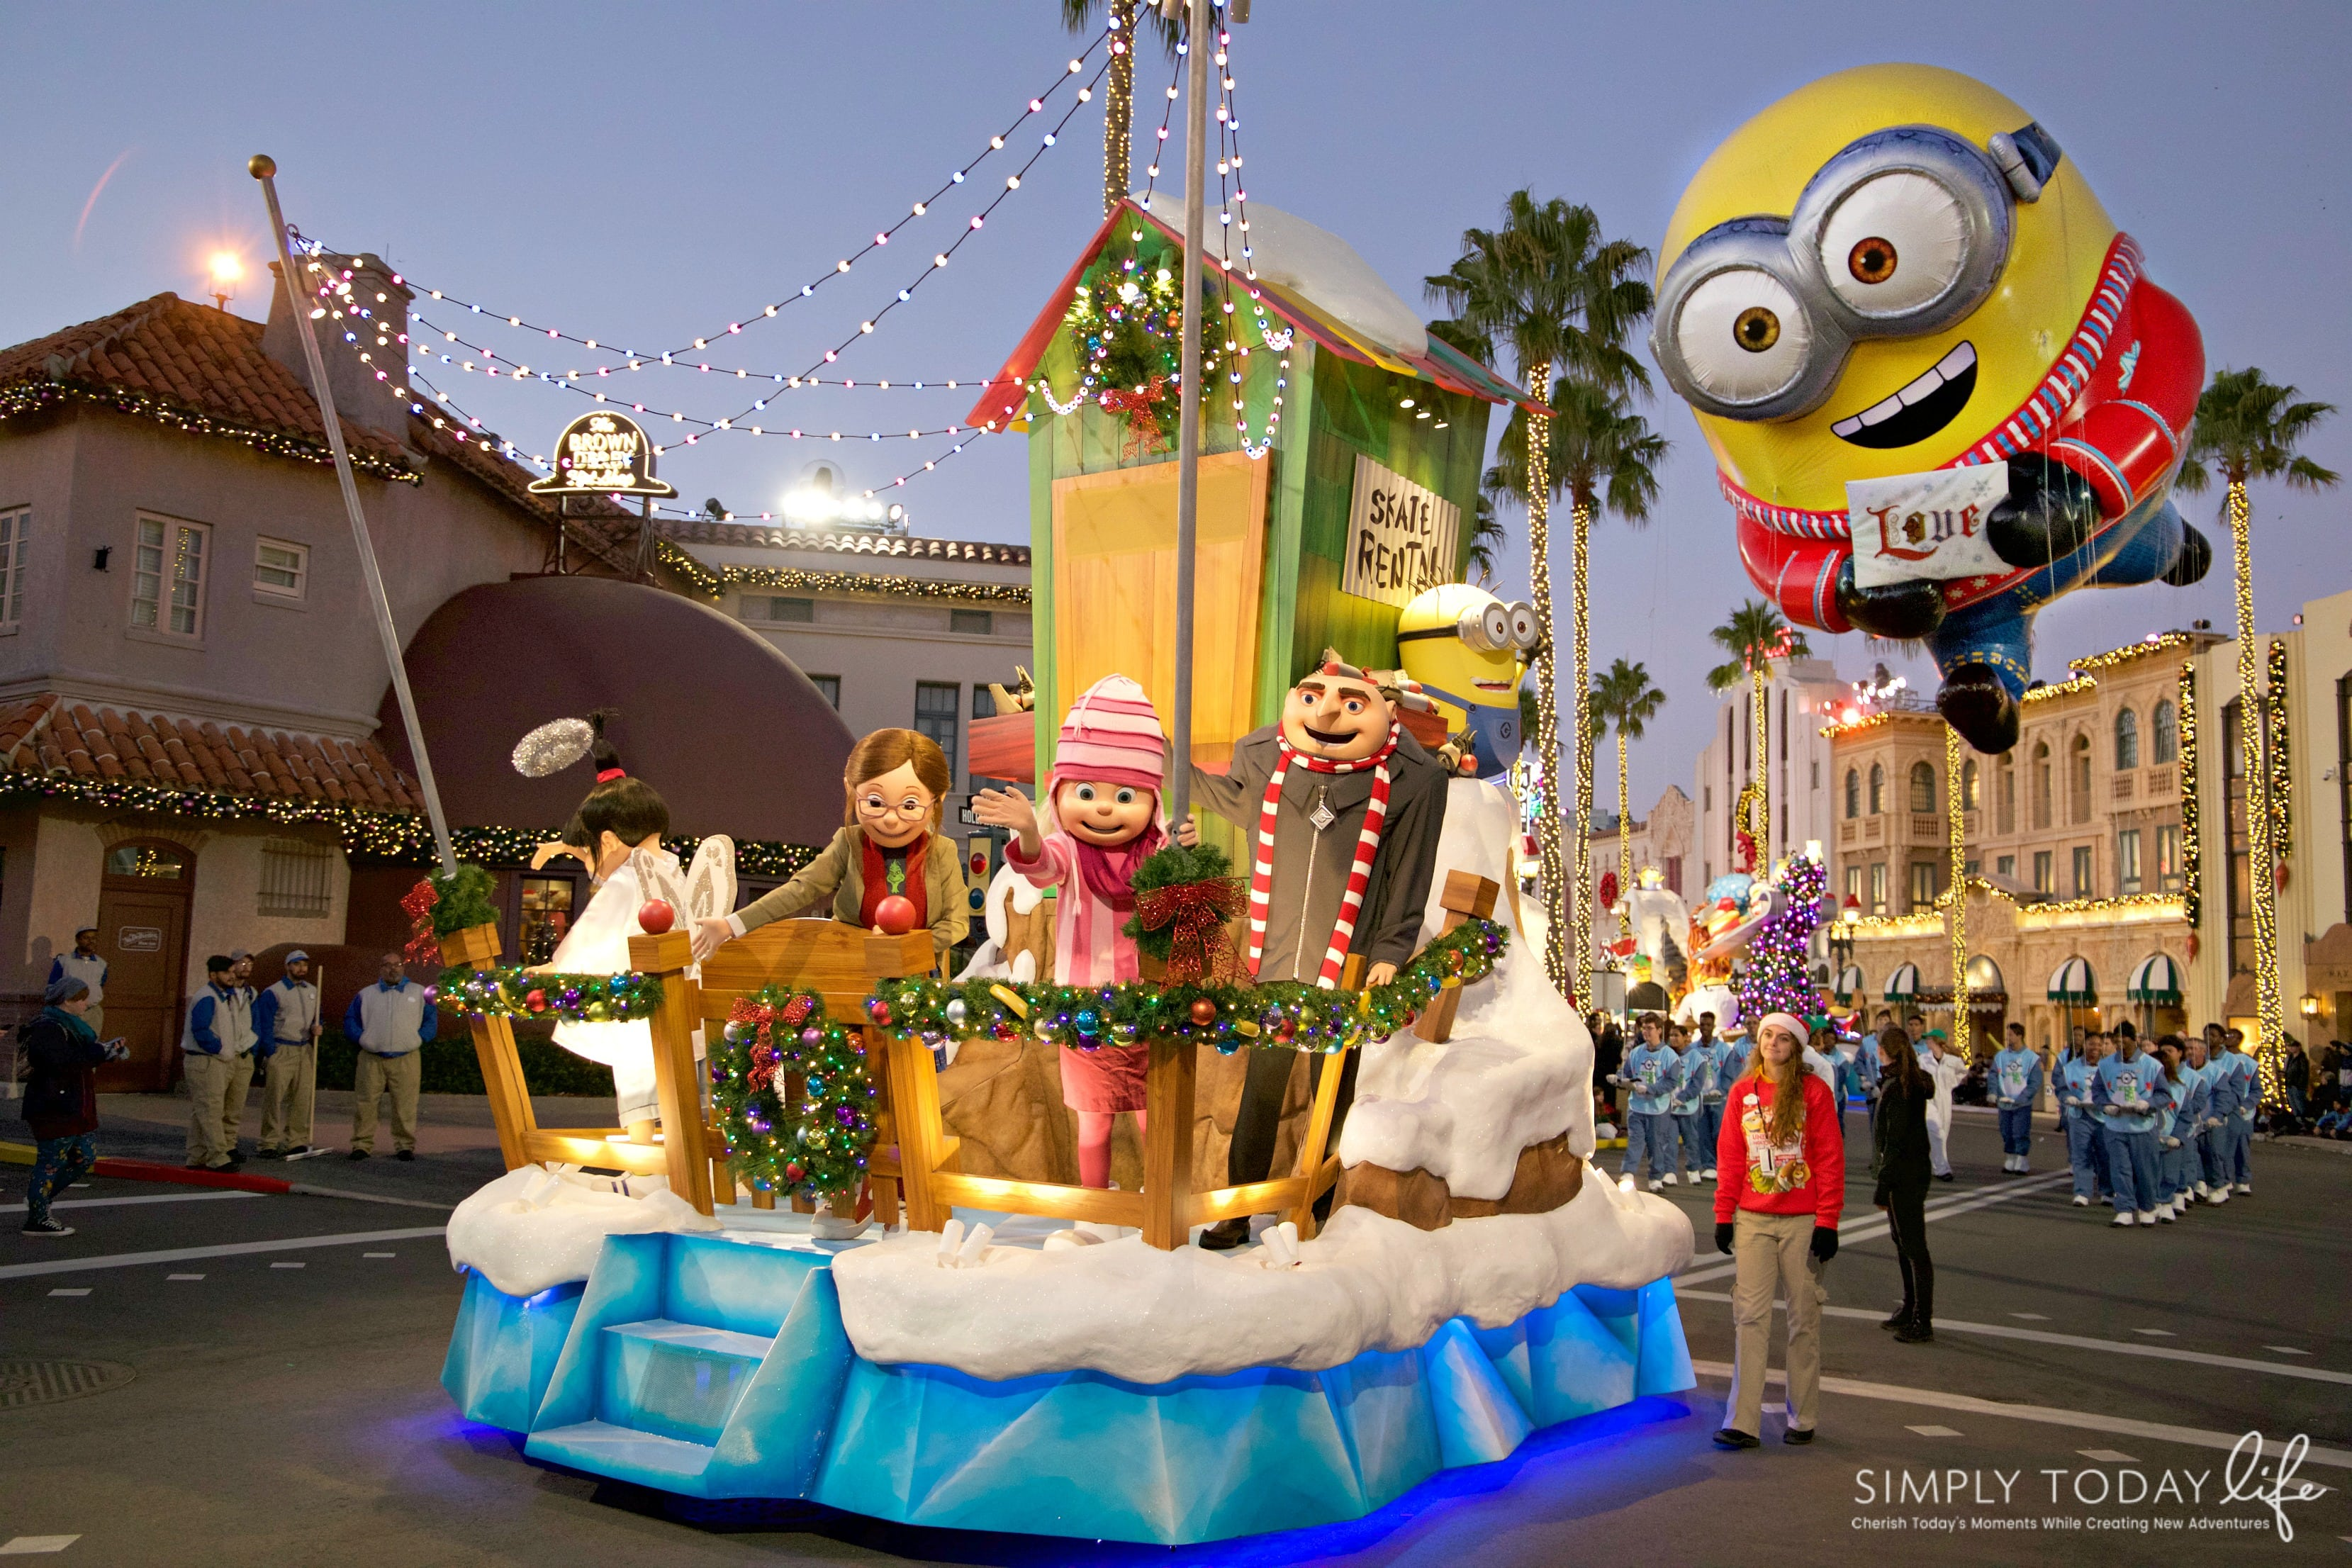 Family Guide To Celebrating the Holidays at Universal Orlando Resort- Minions Float Macy's Parade